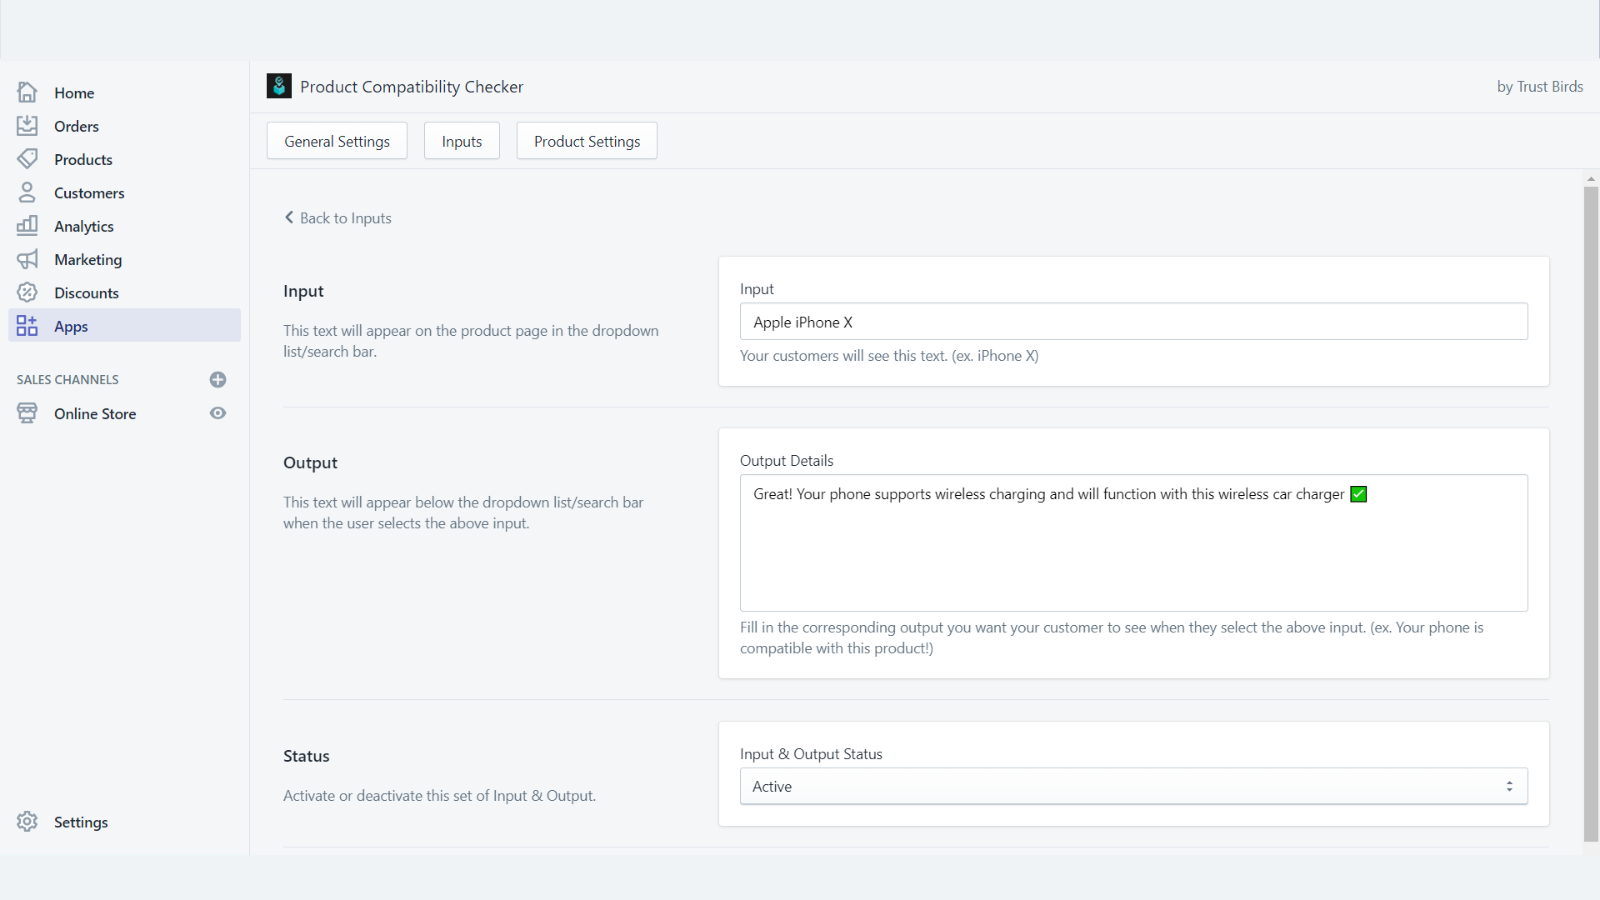 Product Compatibility Checker Inputs Embedded